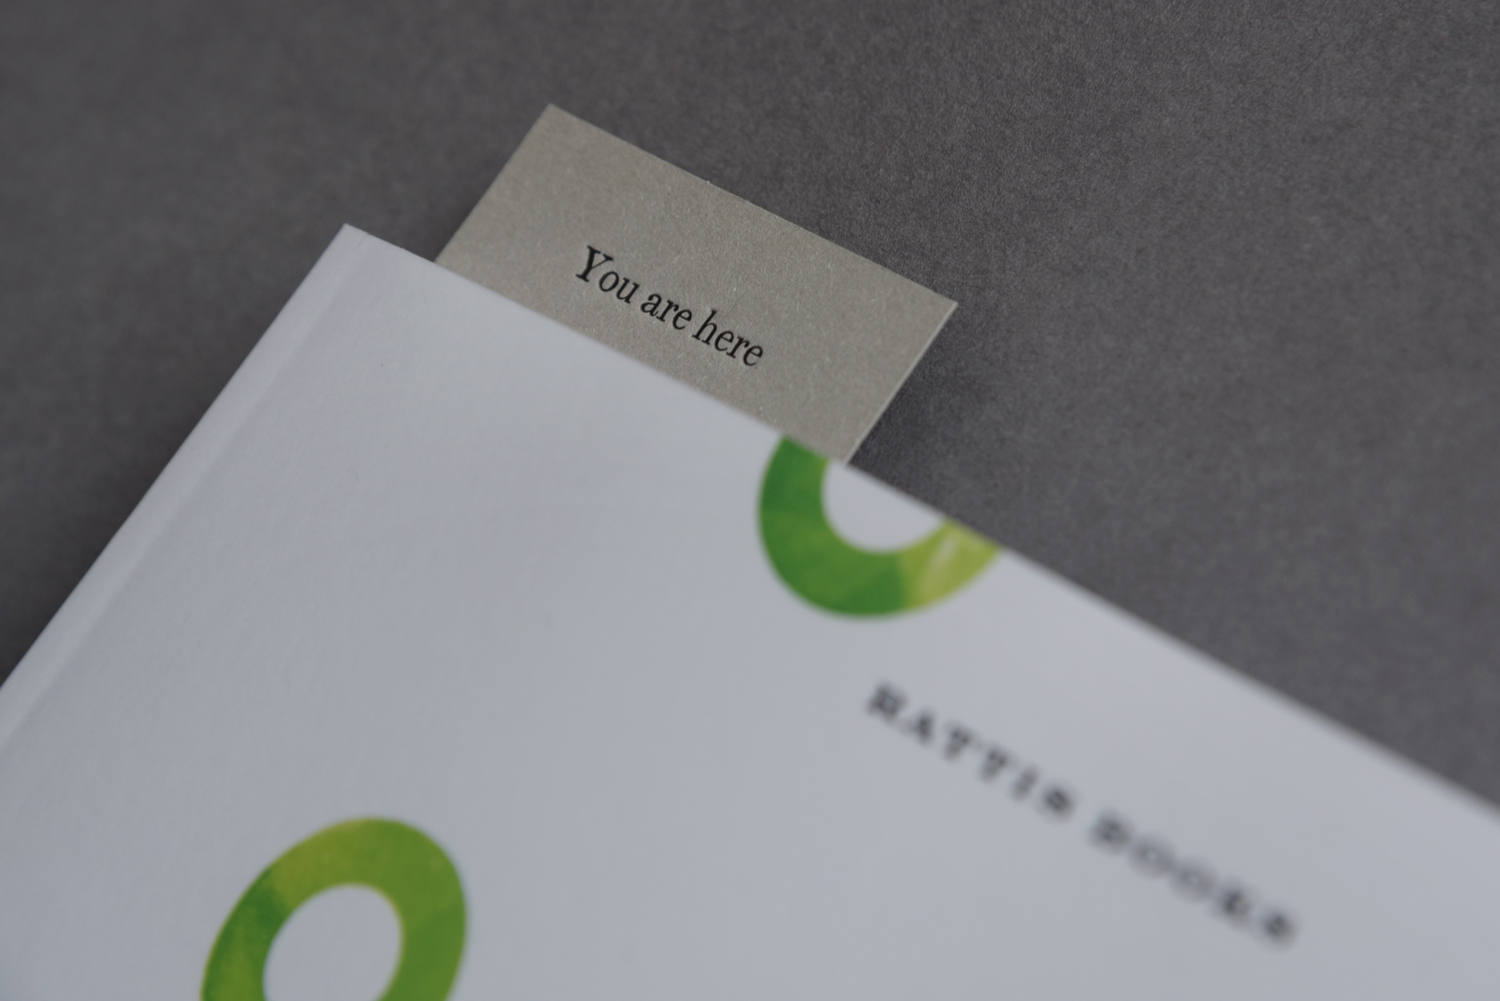 Bookmark by London-based design studio, private press and typography workshop The Counter Press for UK independent publisher Rattis Books.